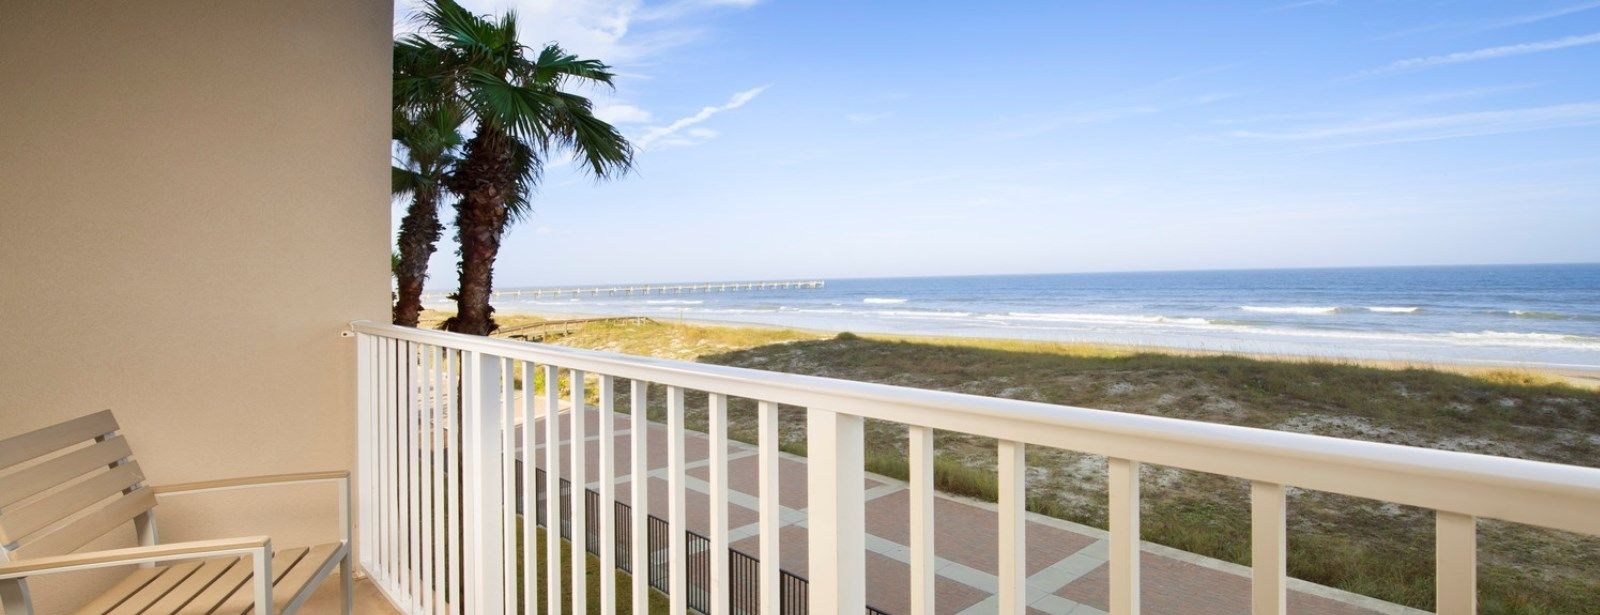 Jacksonville Beach Accommodations - Traditional Double Queen Suite